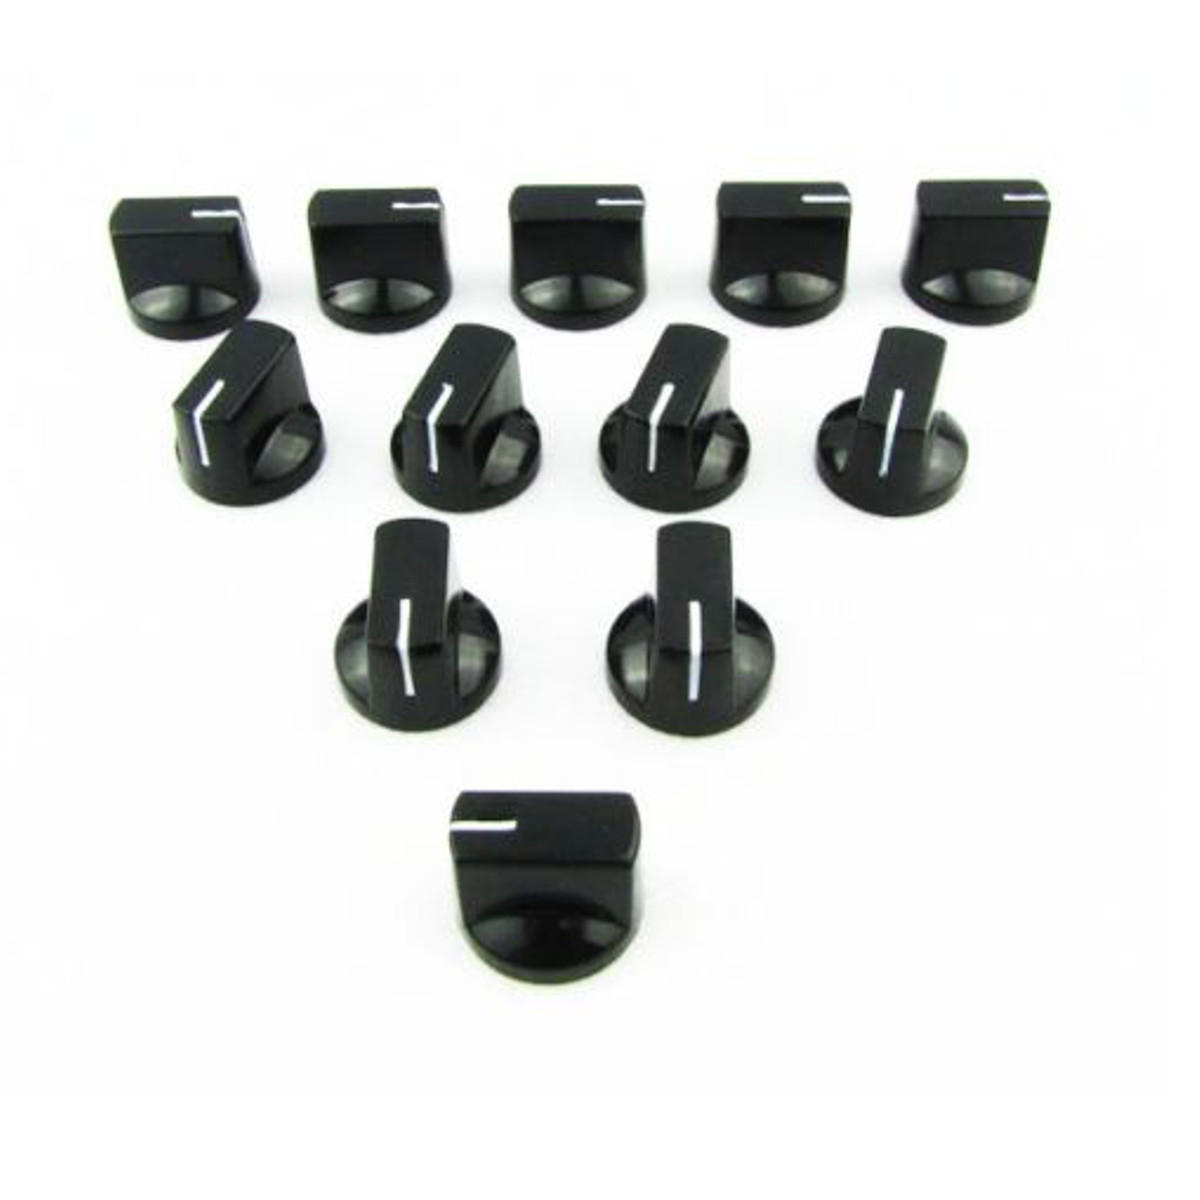 24pcs Plastic Amp Knobs Guitar Effect Pedal Knobs Flat Pointer - Plastic Knobs